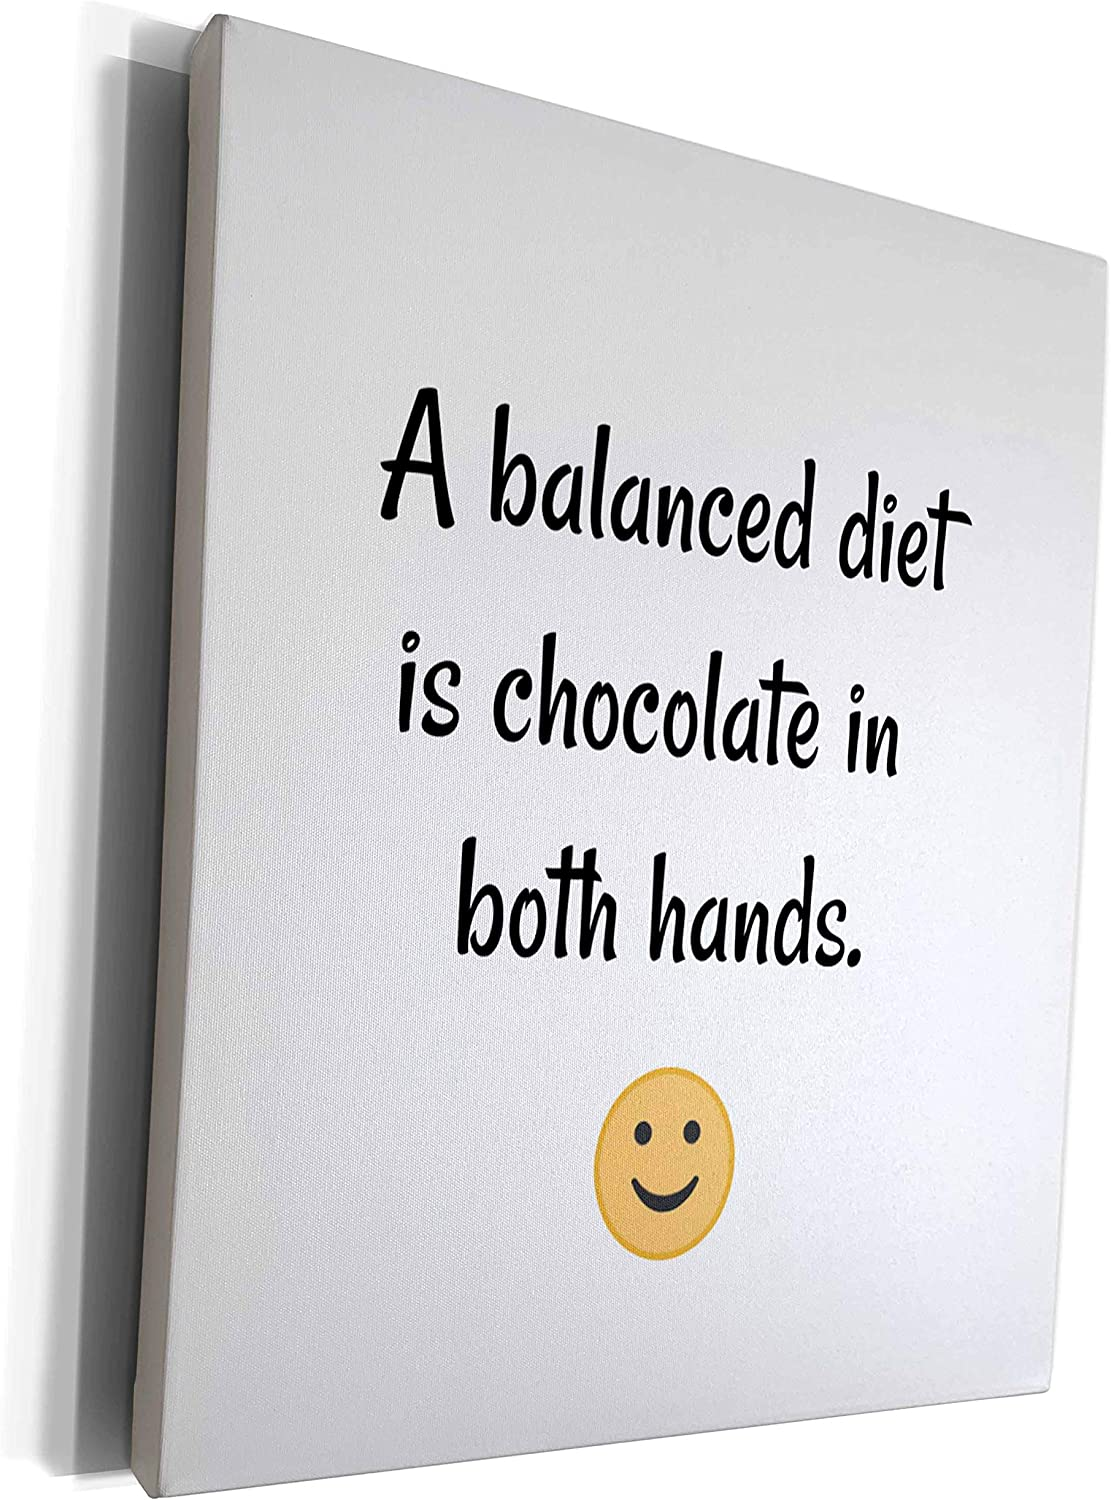 3dRose Nicole R - Quote Image A Diet Balanced Is 2021 new Chocolate of Purchase